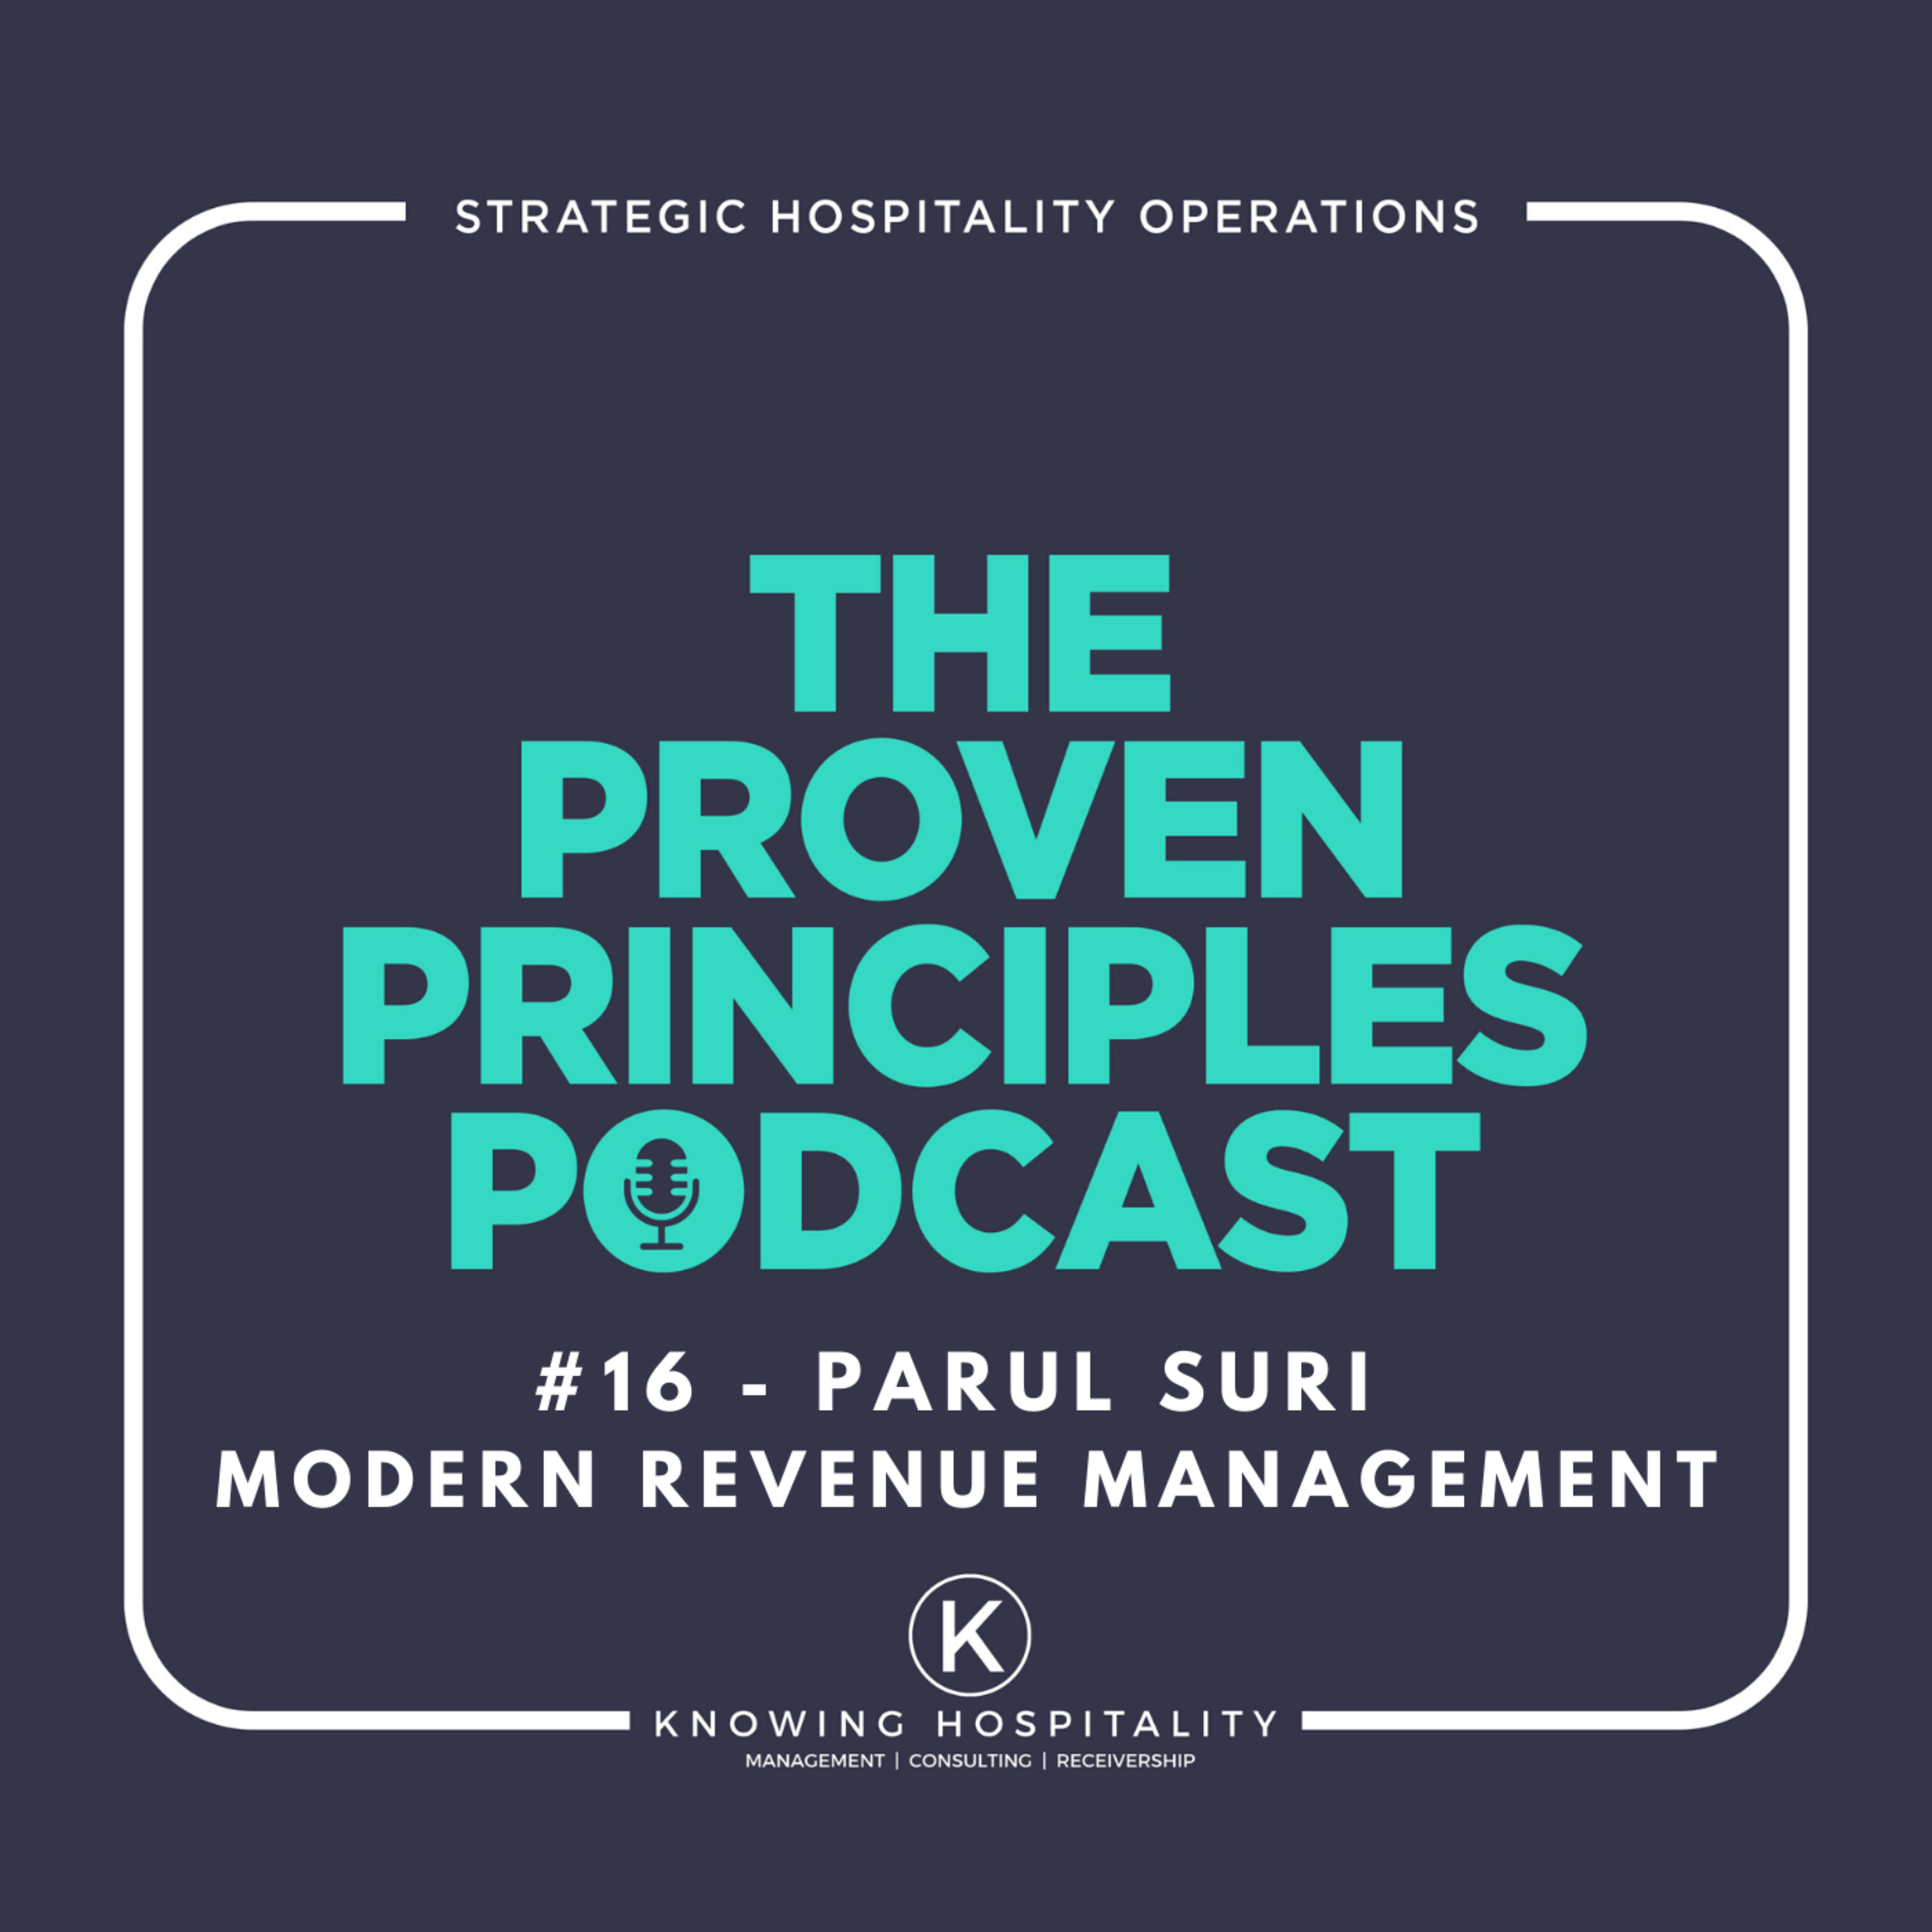 #16: Parul Suri - On Modern Revenue Management